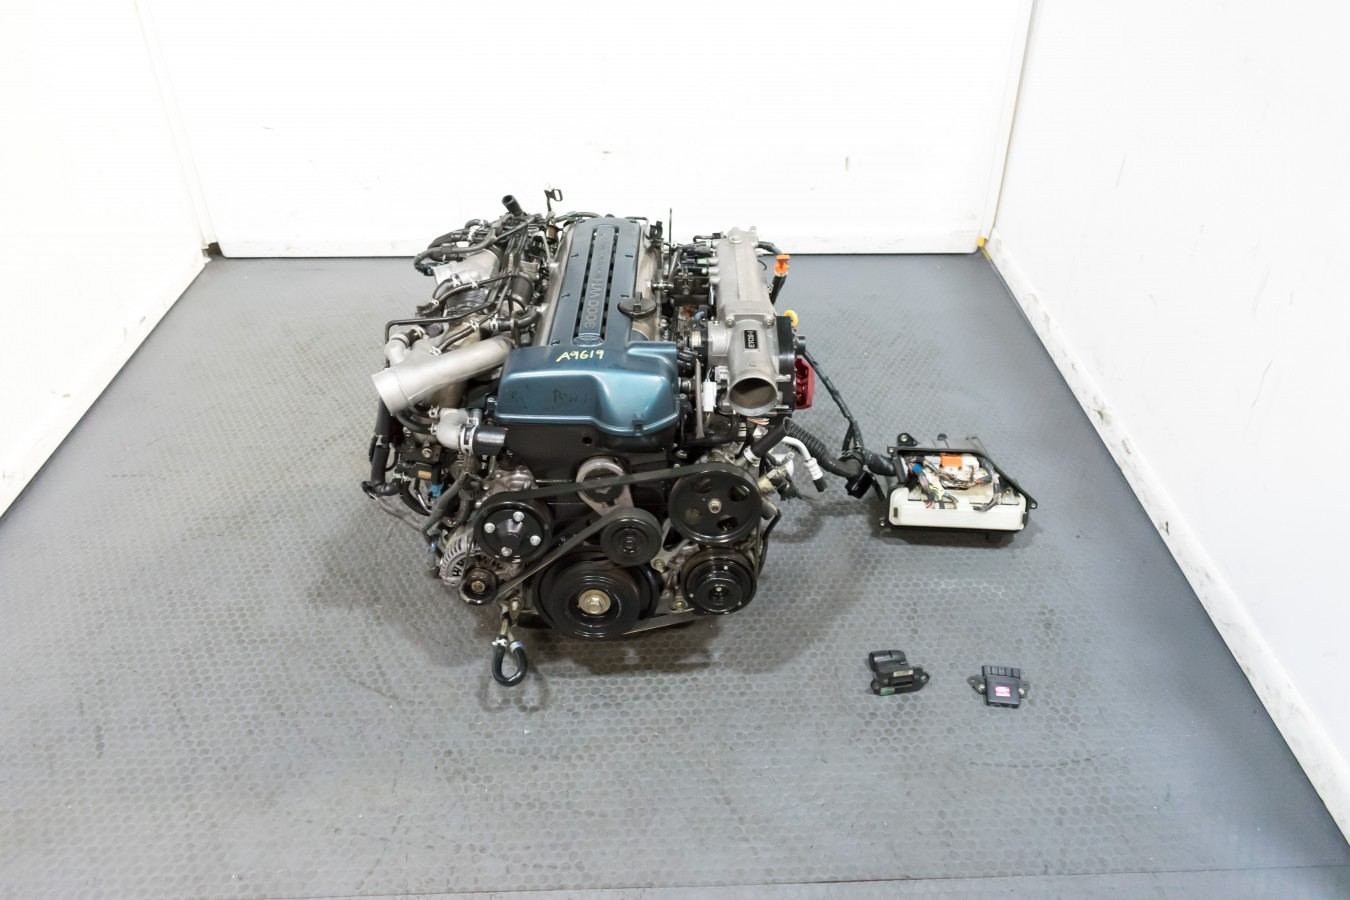 Low Mileage JDM Toyota Aristo Front Sump 2JZ Twin Turbo VVTI Engine with  Auto Transmission and Complete Harness